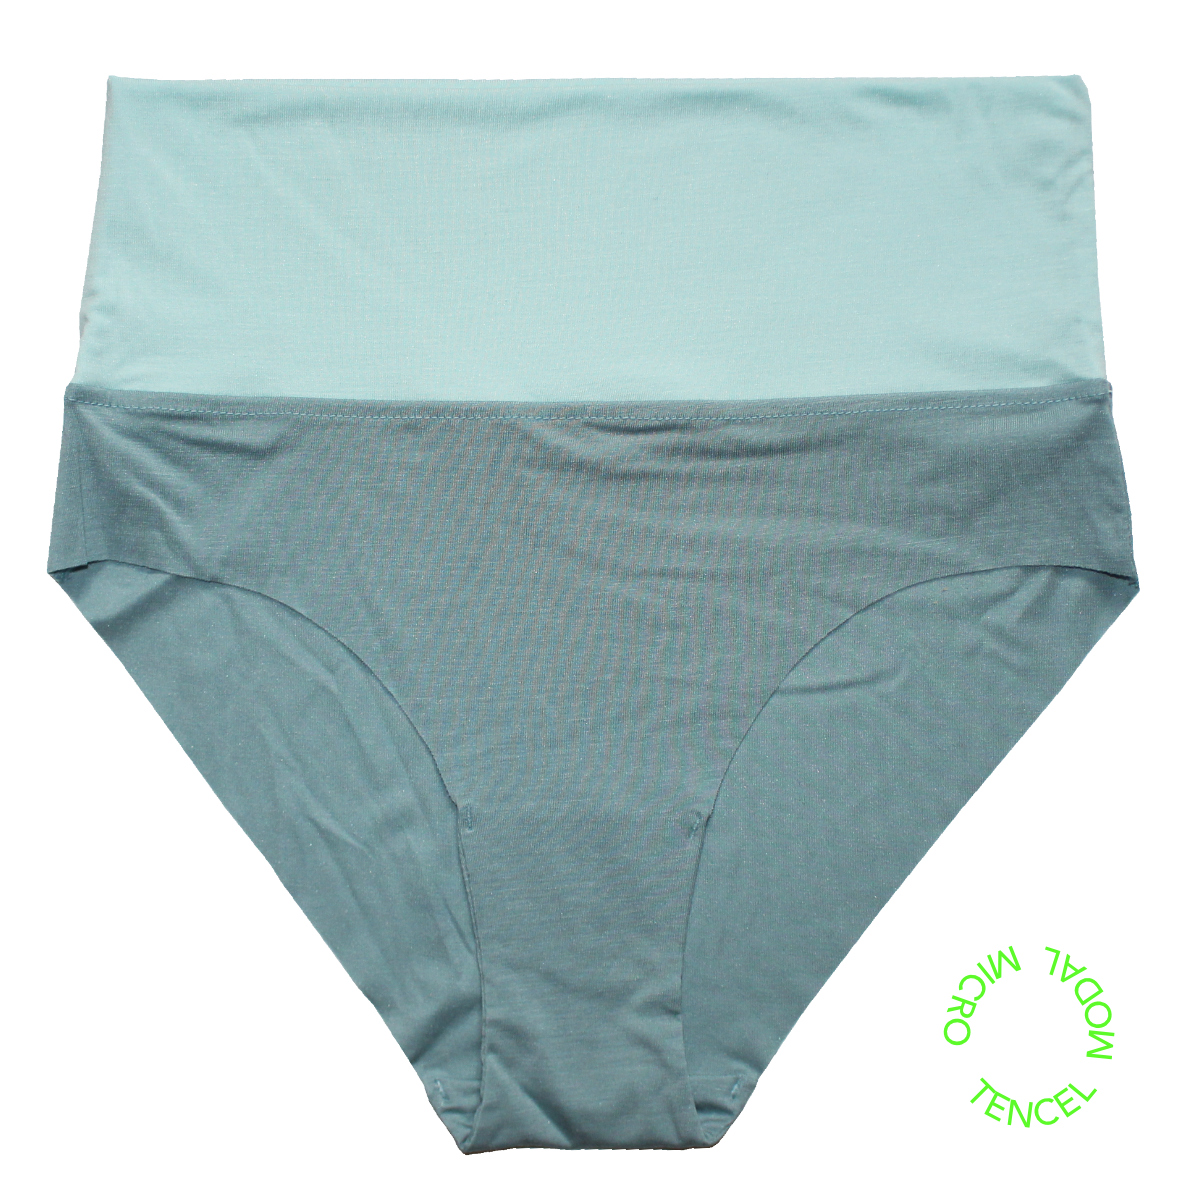 panty stoneblue blue mint green